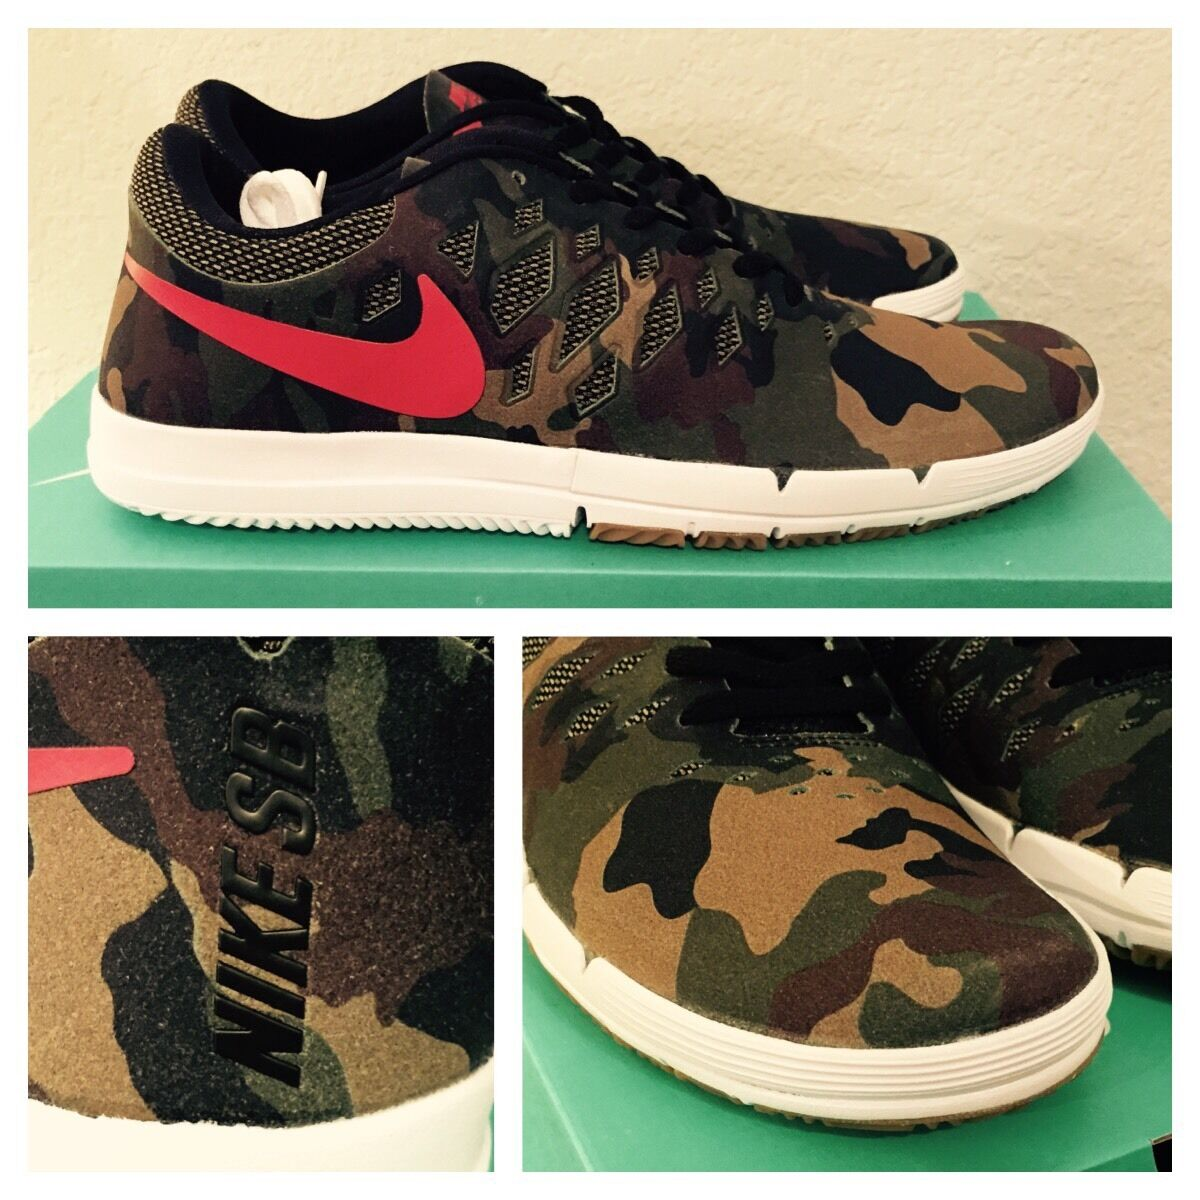 Nike Free SB QS 'Camo' Fortress verde/Gym Rosso - Size 10 - 749677 360 - NIB DS